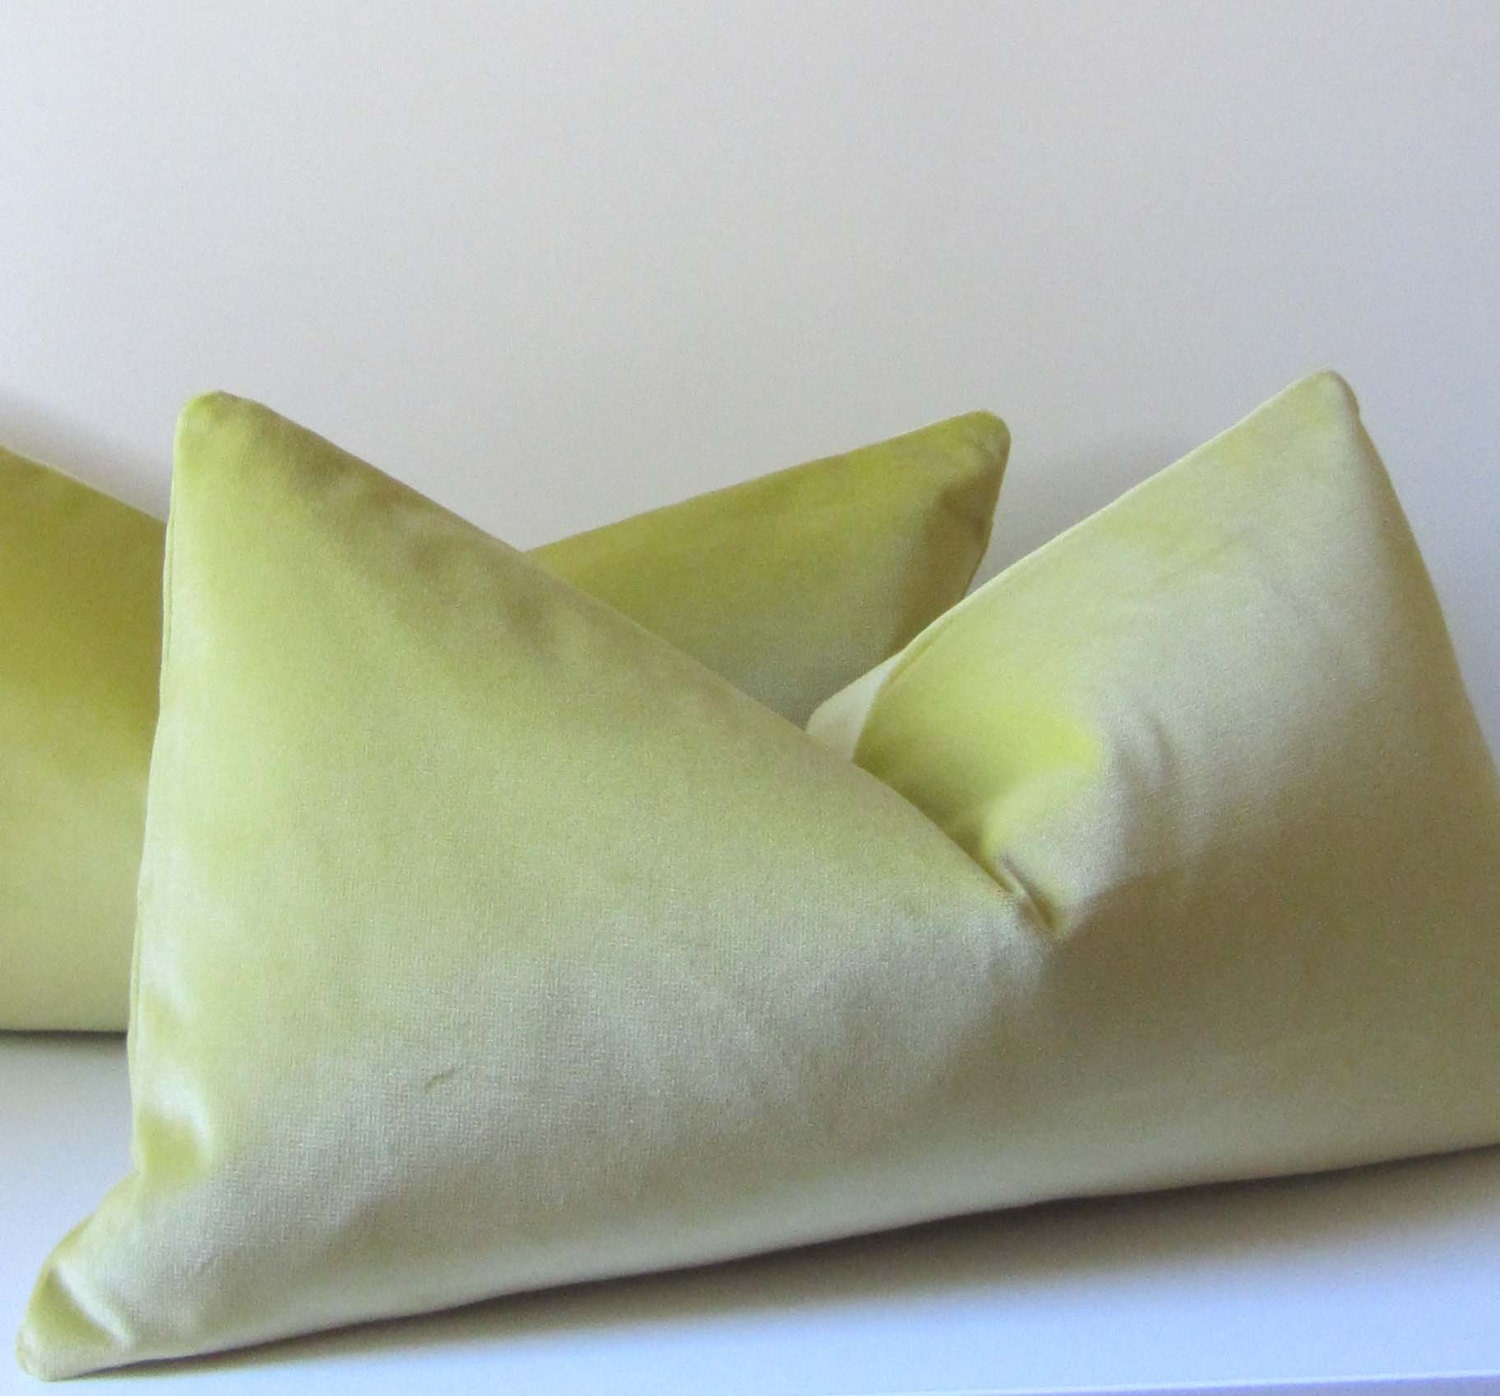 21 Inch Throw Pillow Covers : Citron Velvet Pillow Decorative Pillow Cover 11 x 21 inch